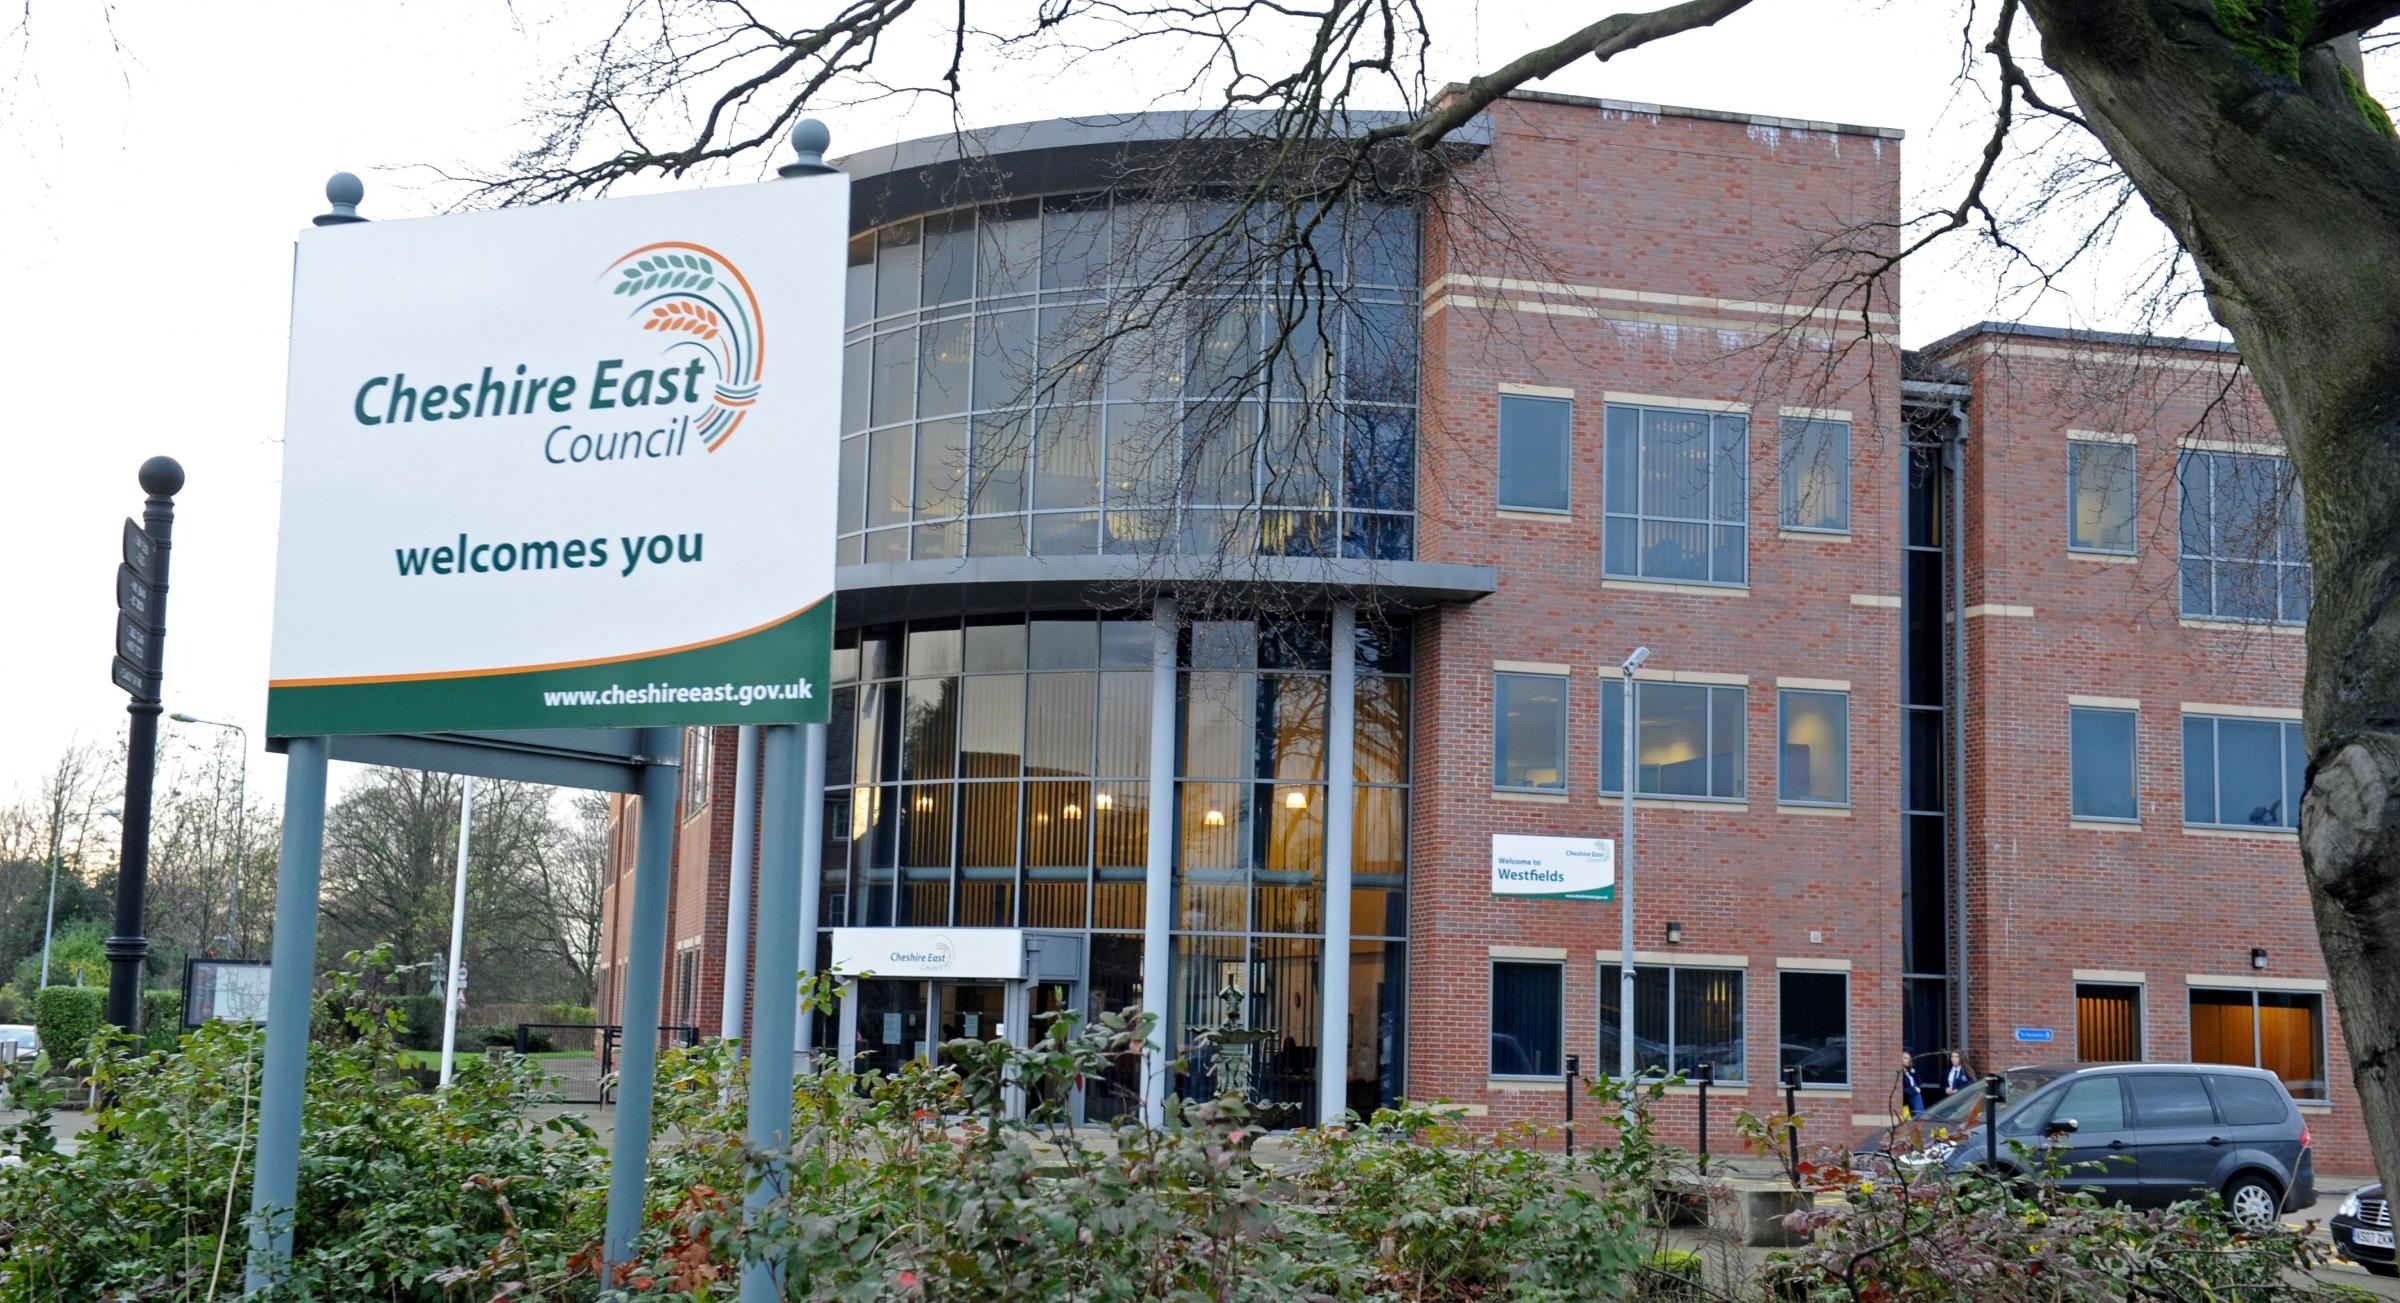 Cheshire East Council offices in Sandbach.